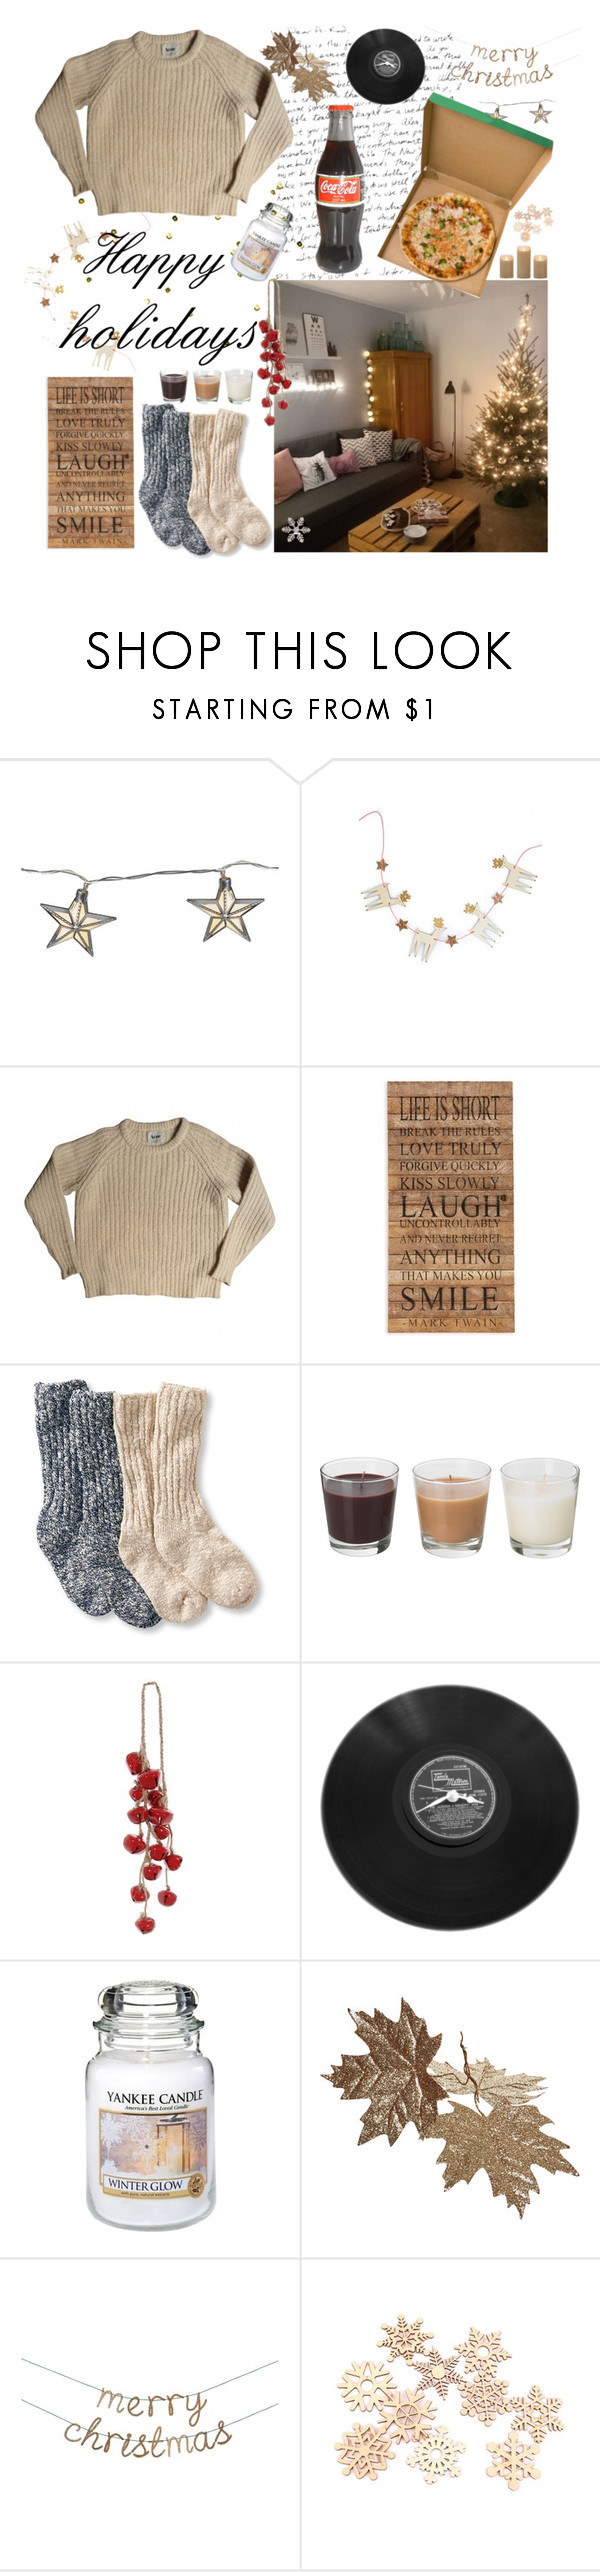 """happy holidays 💫"" by lilyjey ❤ liked on Polyvore featuring interior, interiors, interior design, home, home decor, interior decorating, Parlane, Ana Accessories, Acne Studios and Second Nature By Hand"